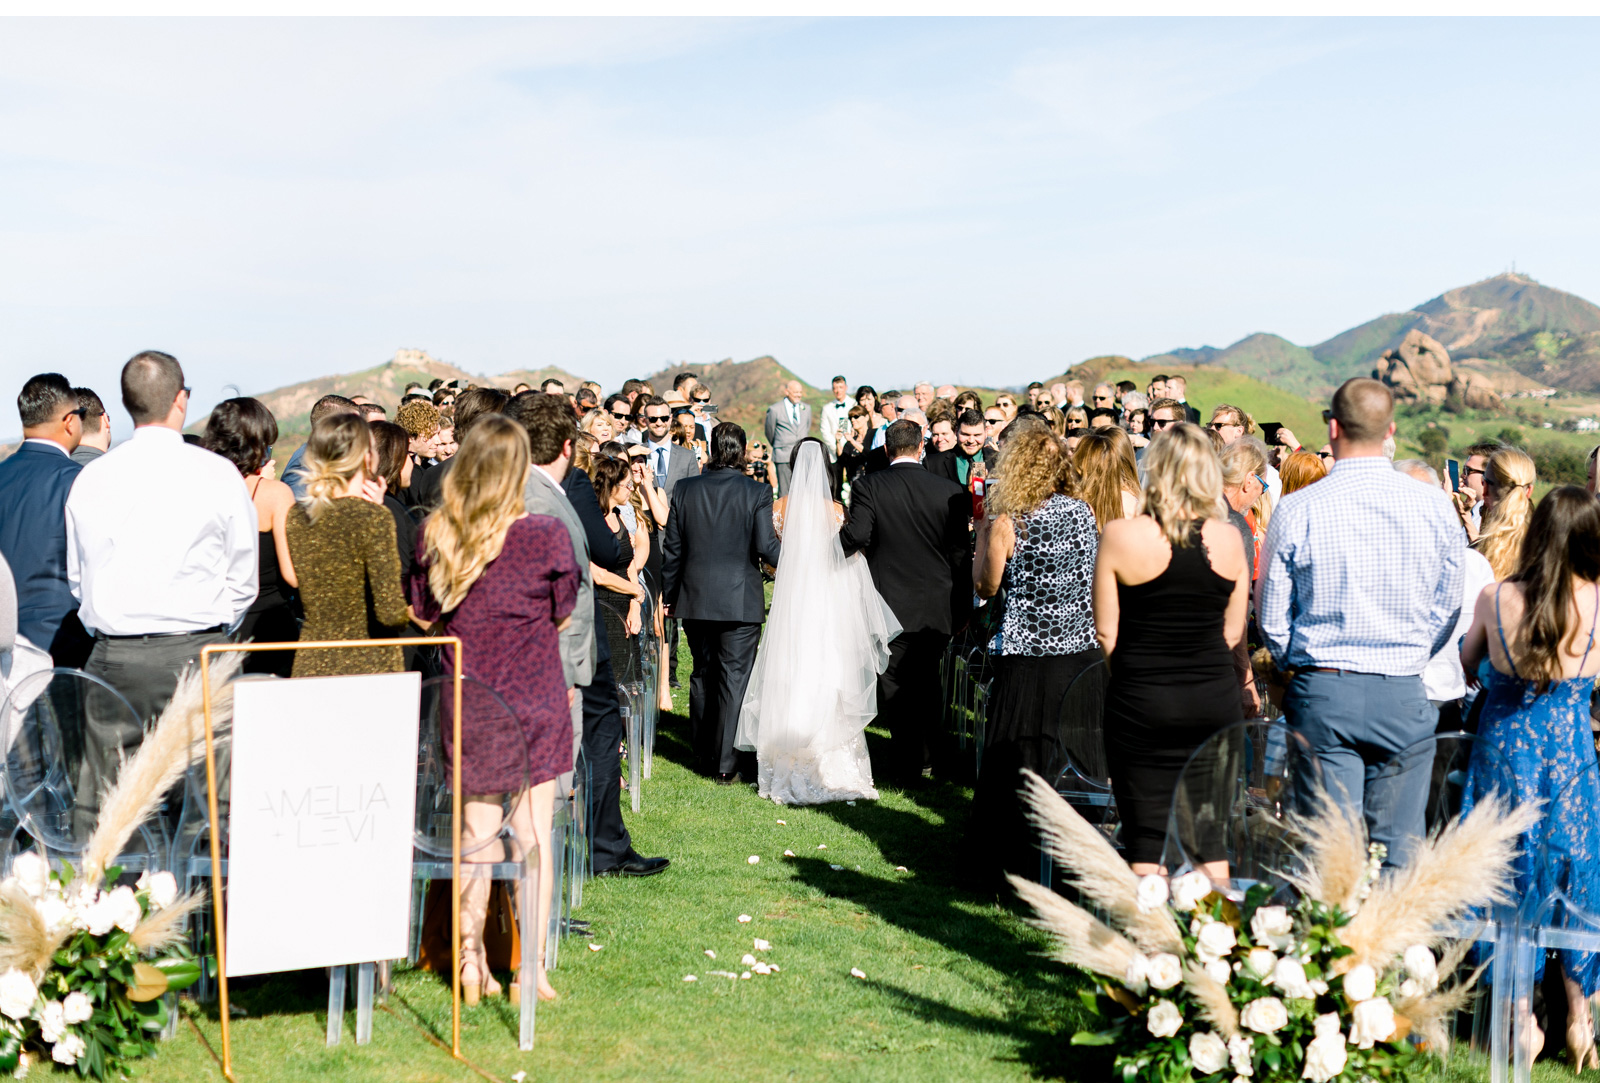 Style-Me-Pretty-Malibu-Wedding-Photogrpaher-Southern-California-Wedding-Photographer-Natalie-Schutt-Photography-_12.jpg